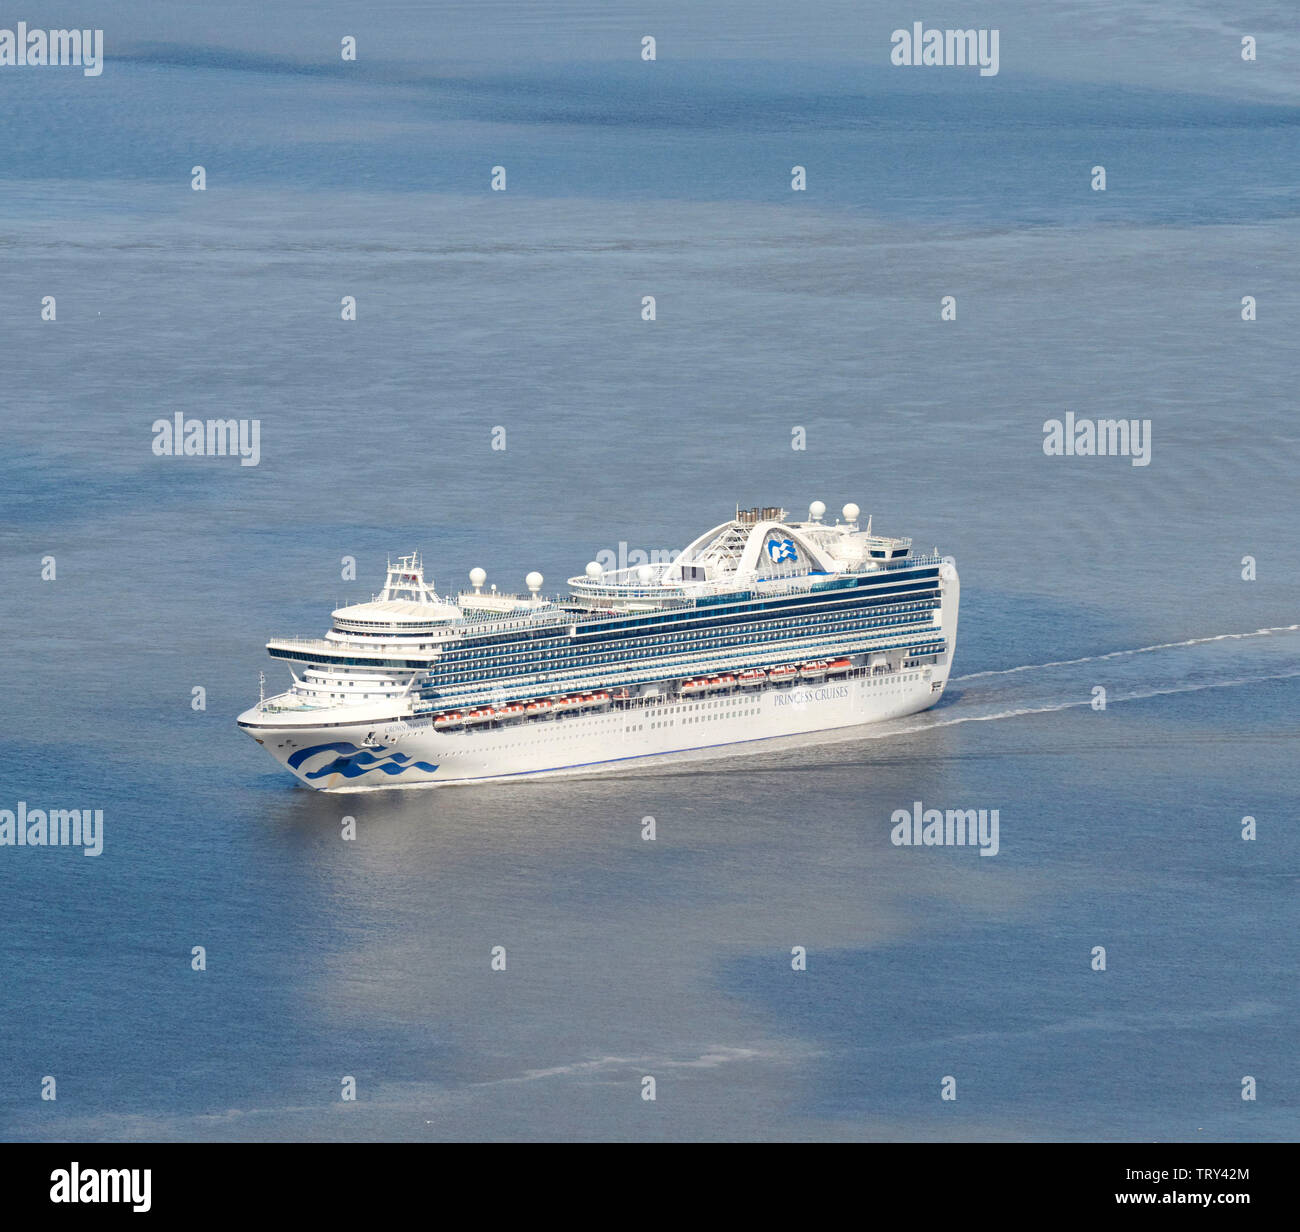 Crown Princess cruise ship, sailing into Liverpool on Mersey Estuary, North West England, UK - Stock Image